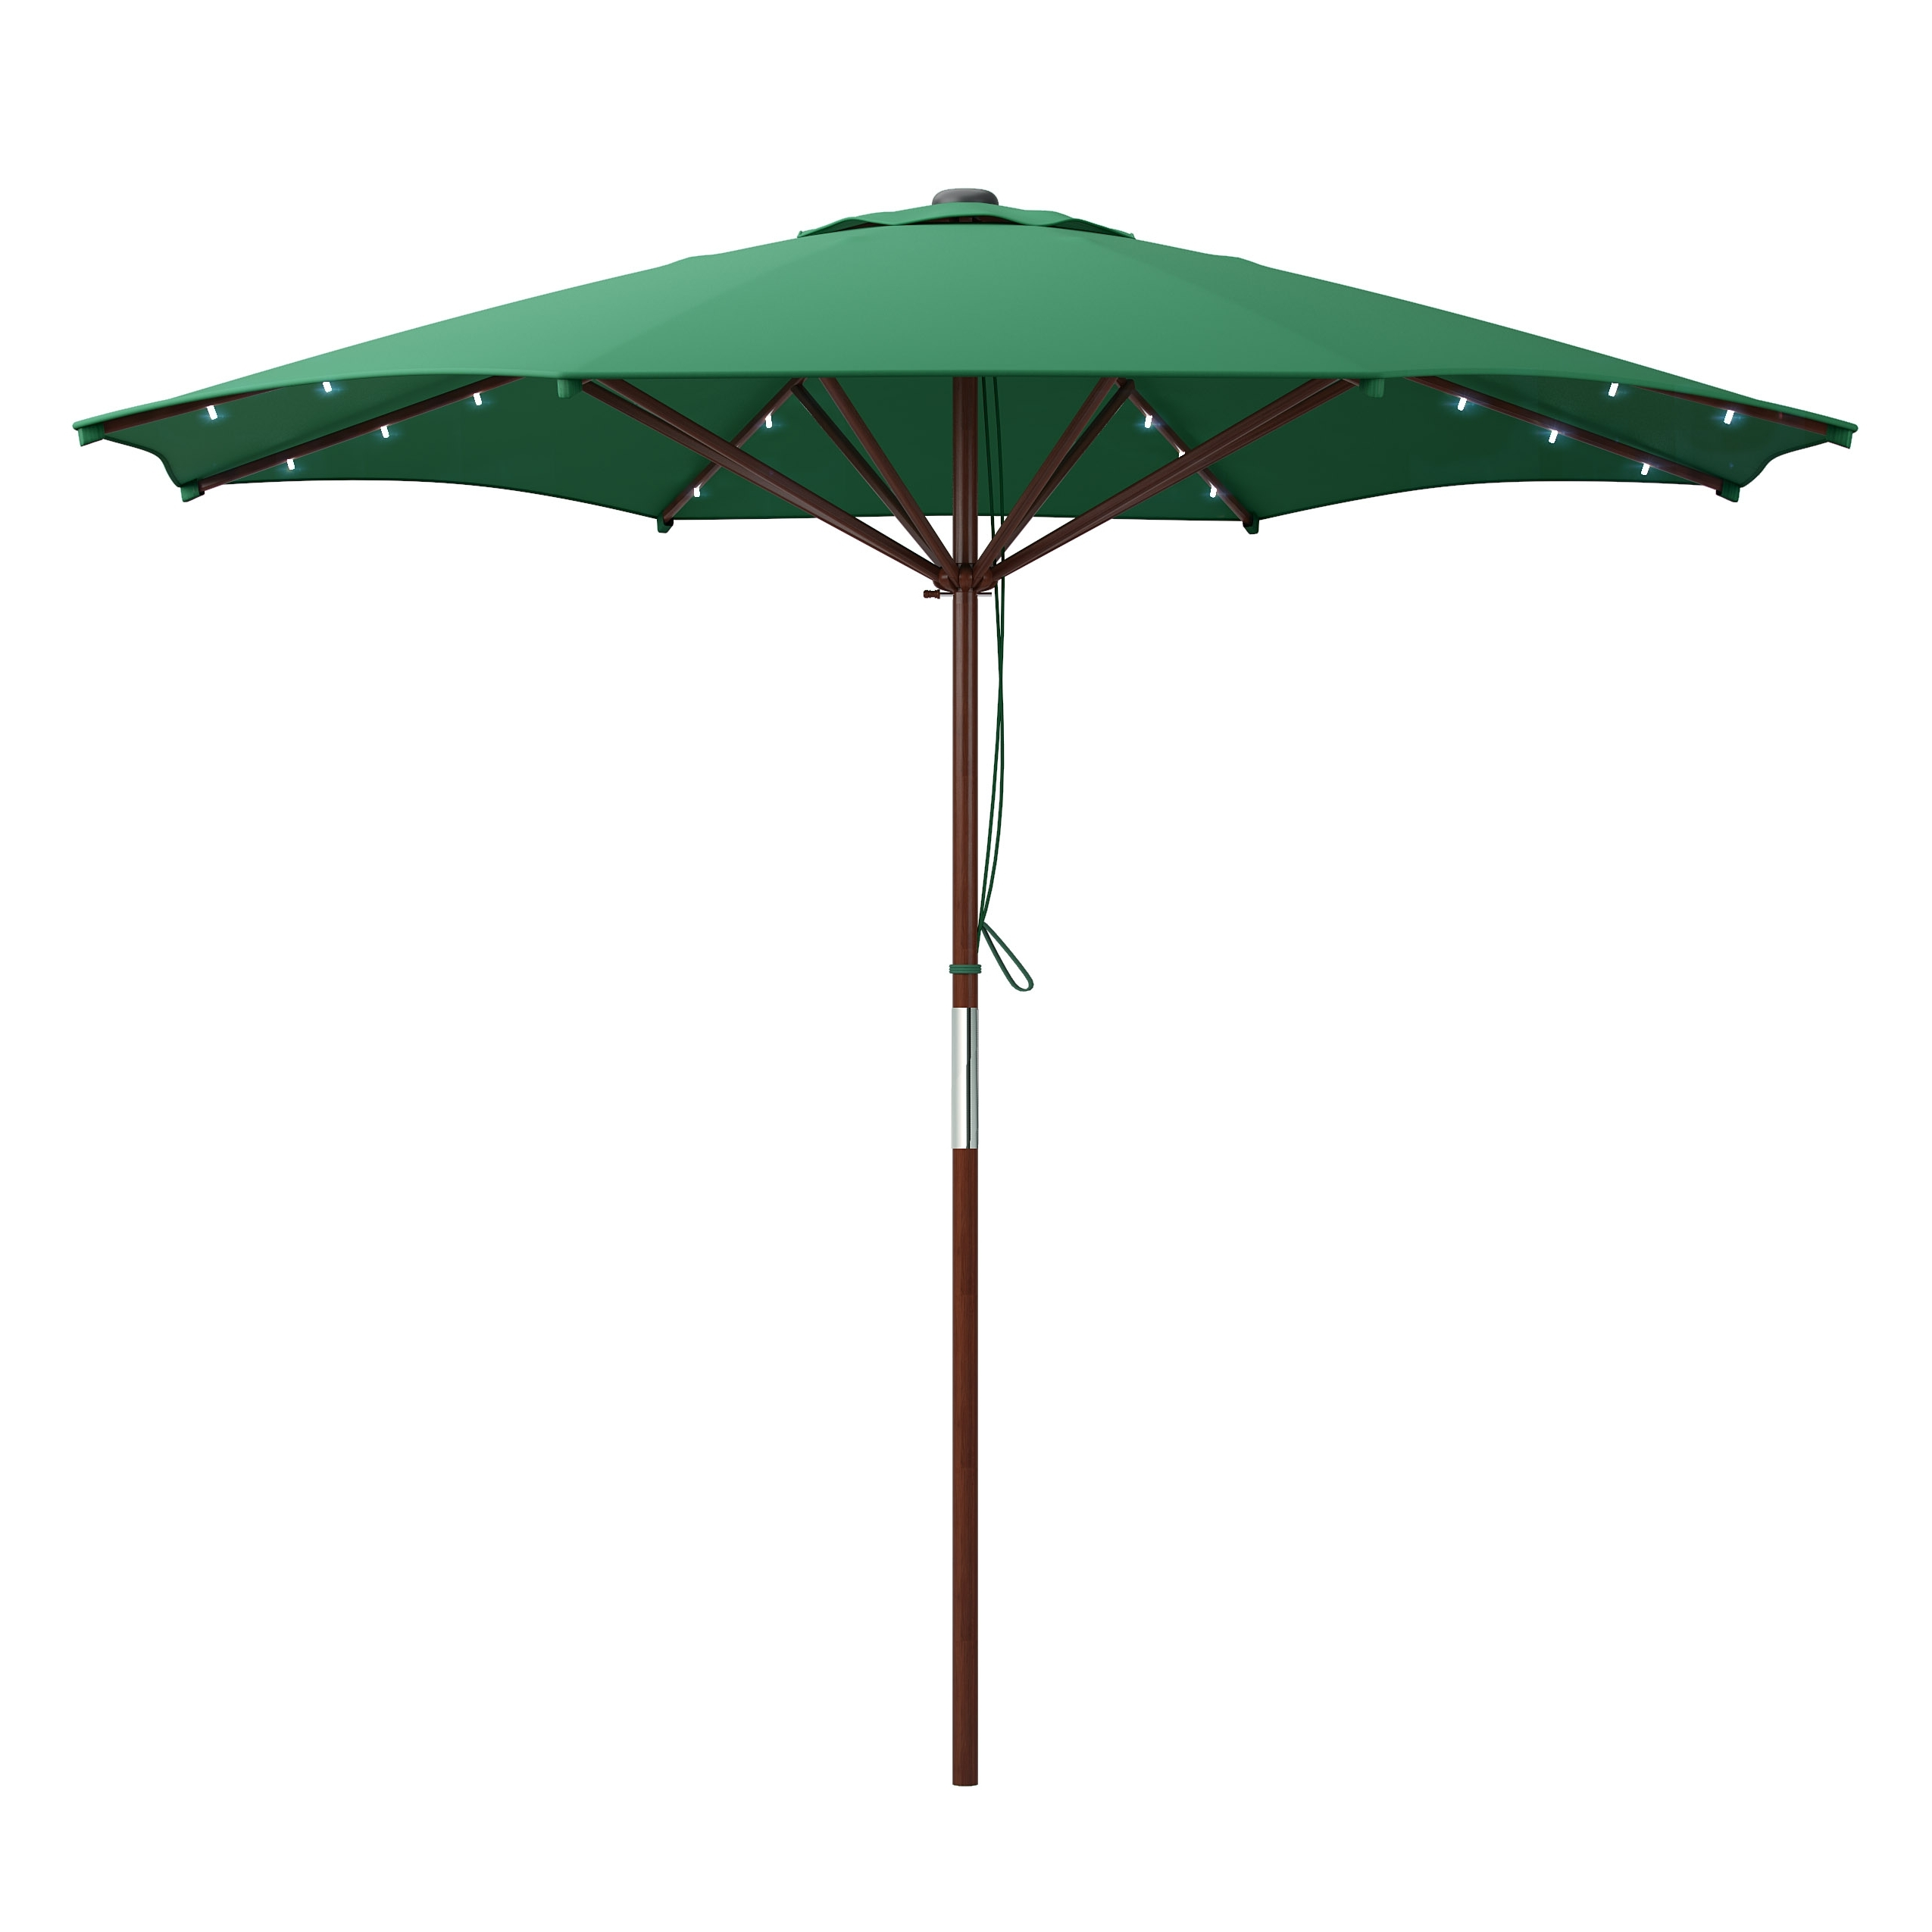 Most Recent Solar Powered Patio Umbrellas Throughout Green Patio Umbrella With Solar Power Led Lights (View 6 of 20)